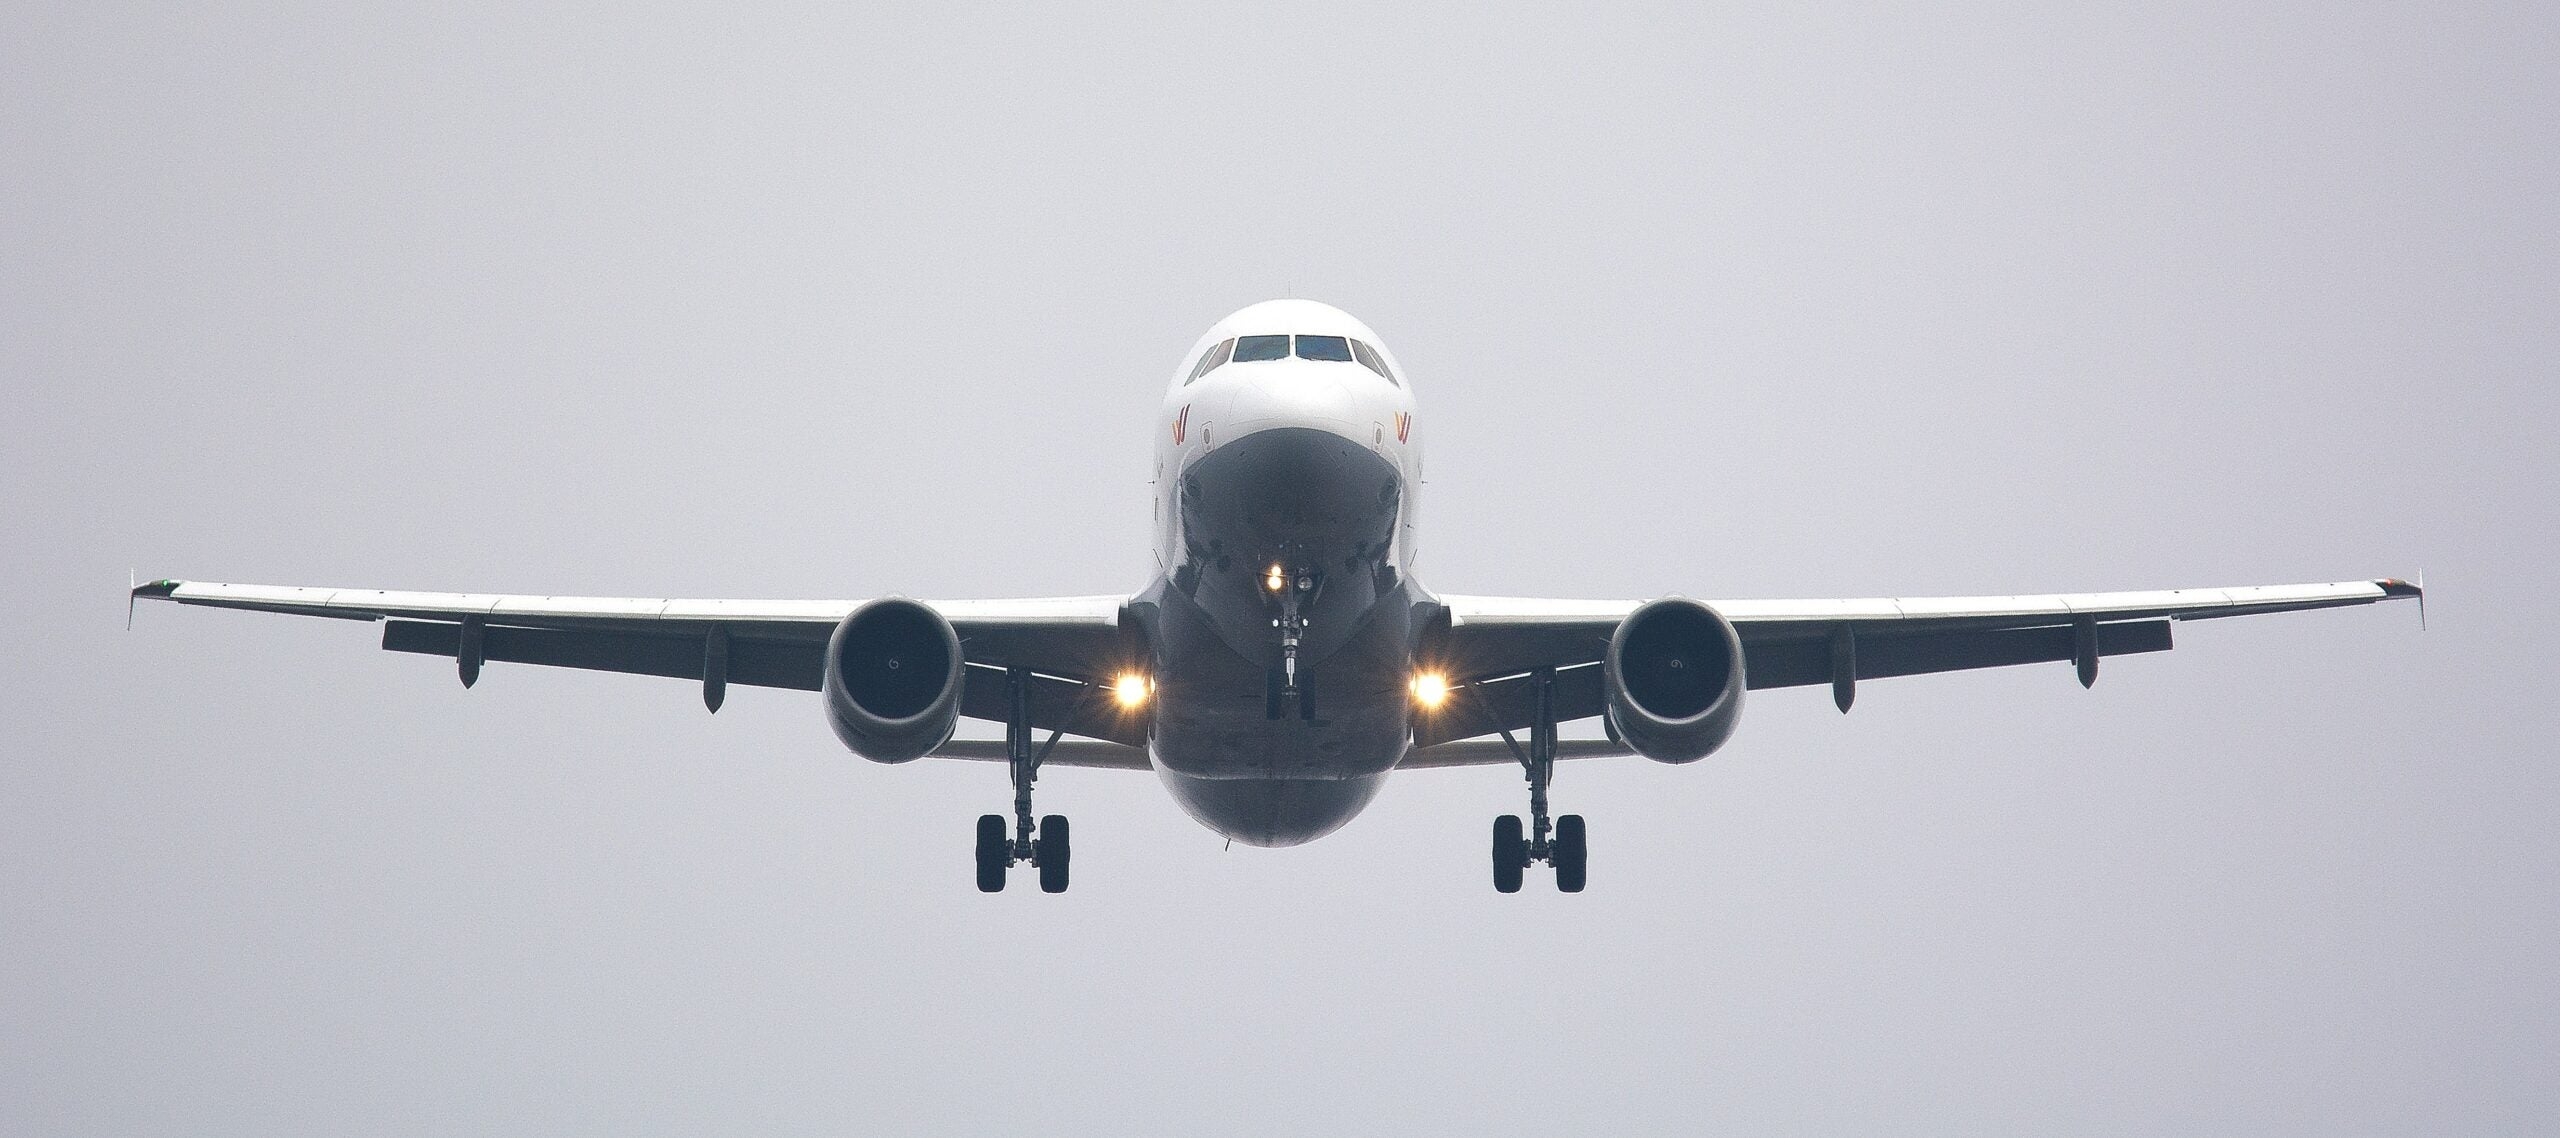 To shorten flights and lower emissions, scientists are discussing the birds and the bees